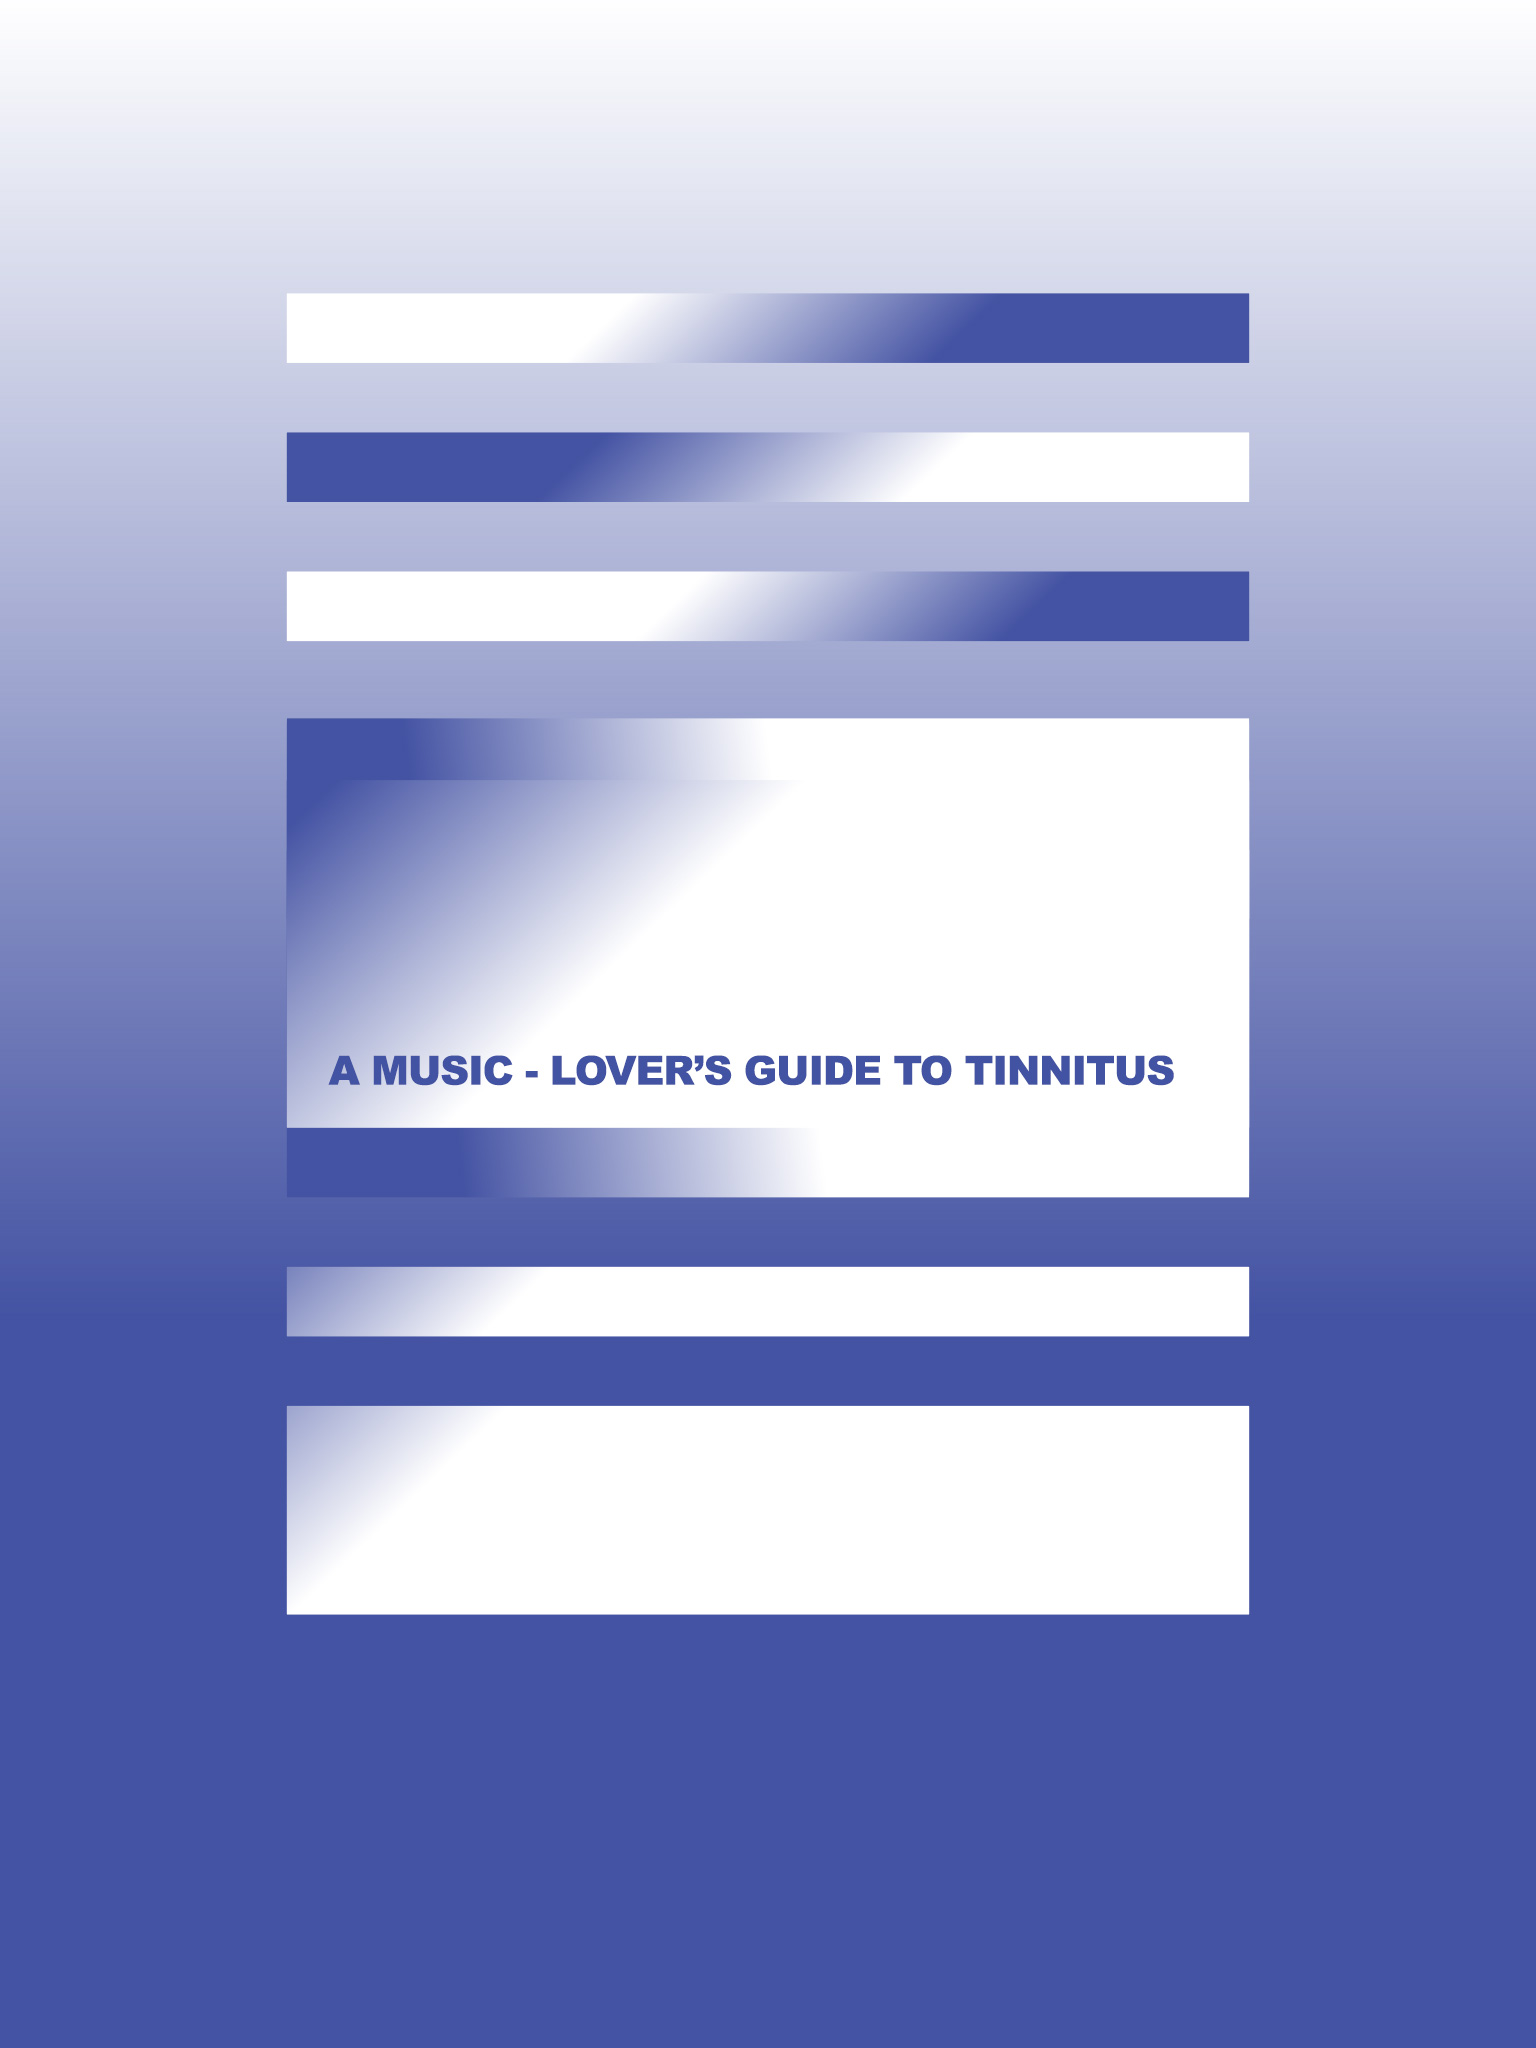 A music-lover's guide to tinnitus